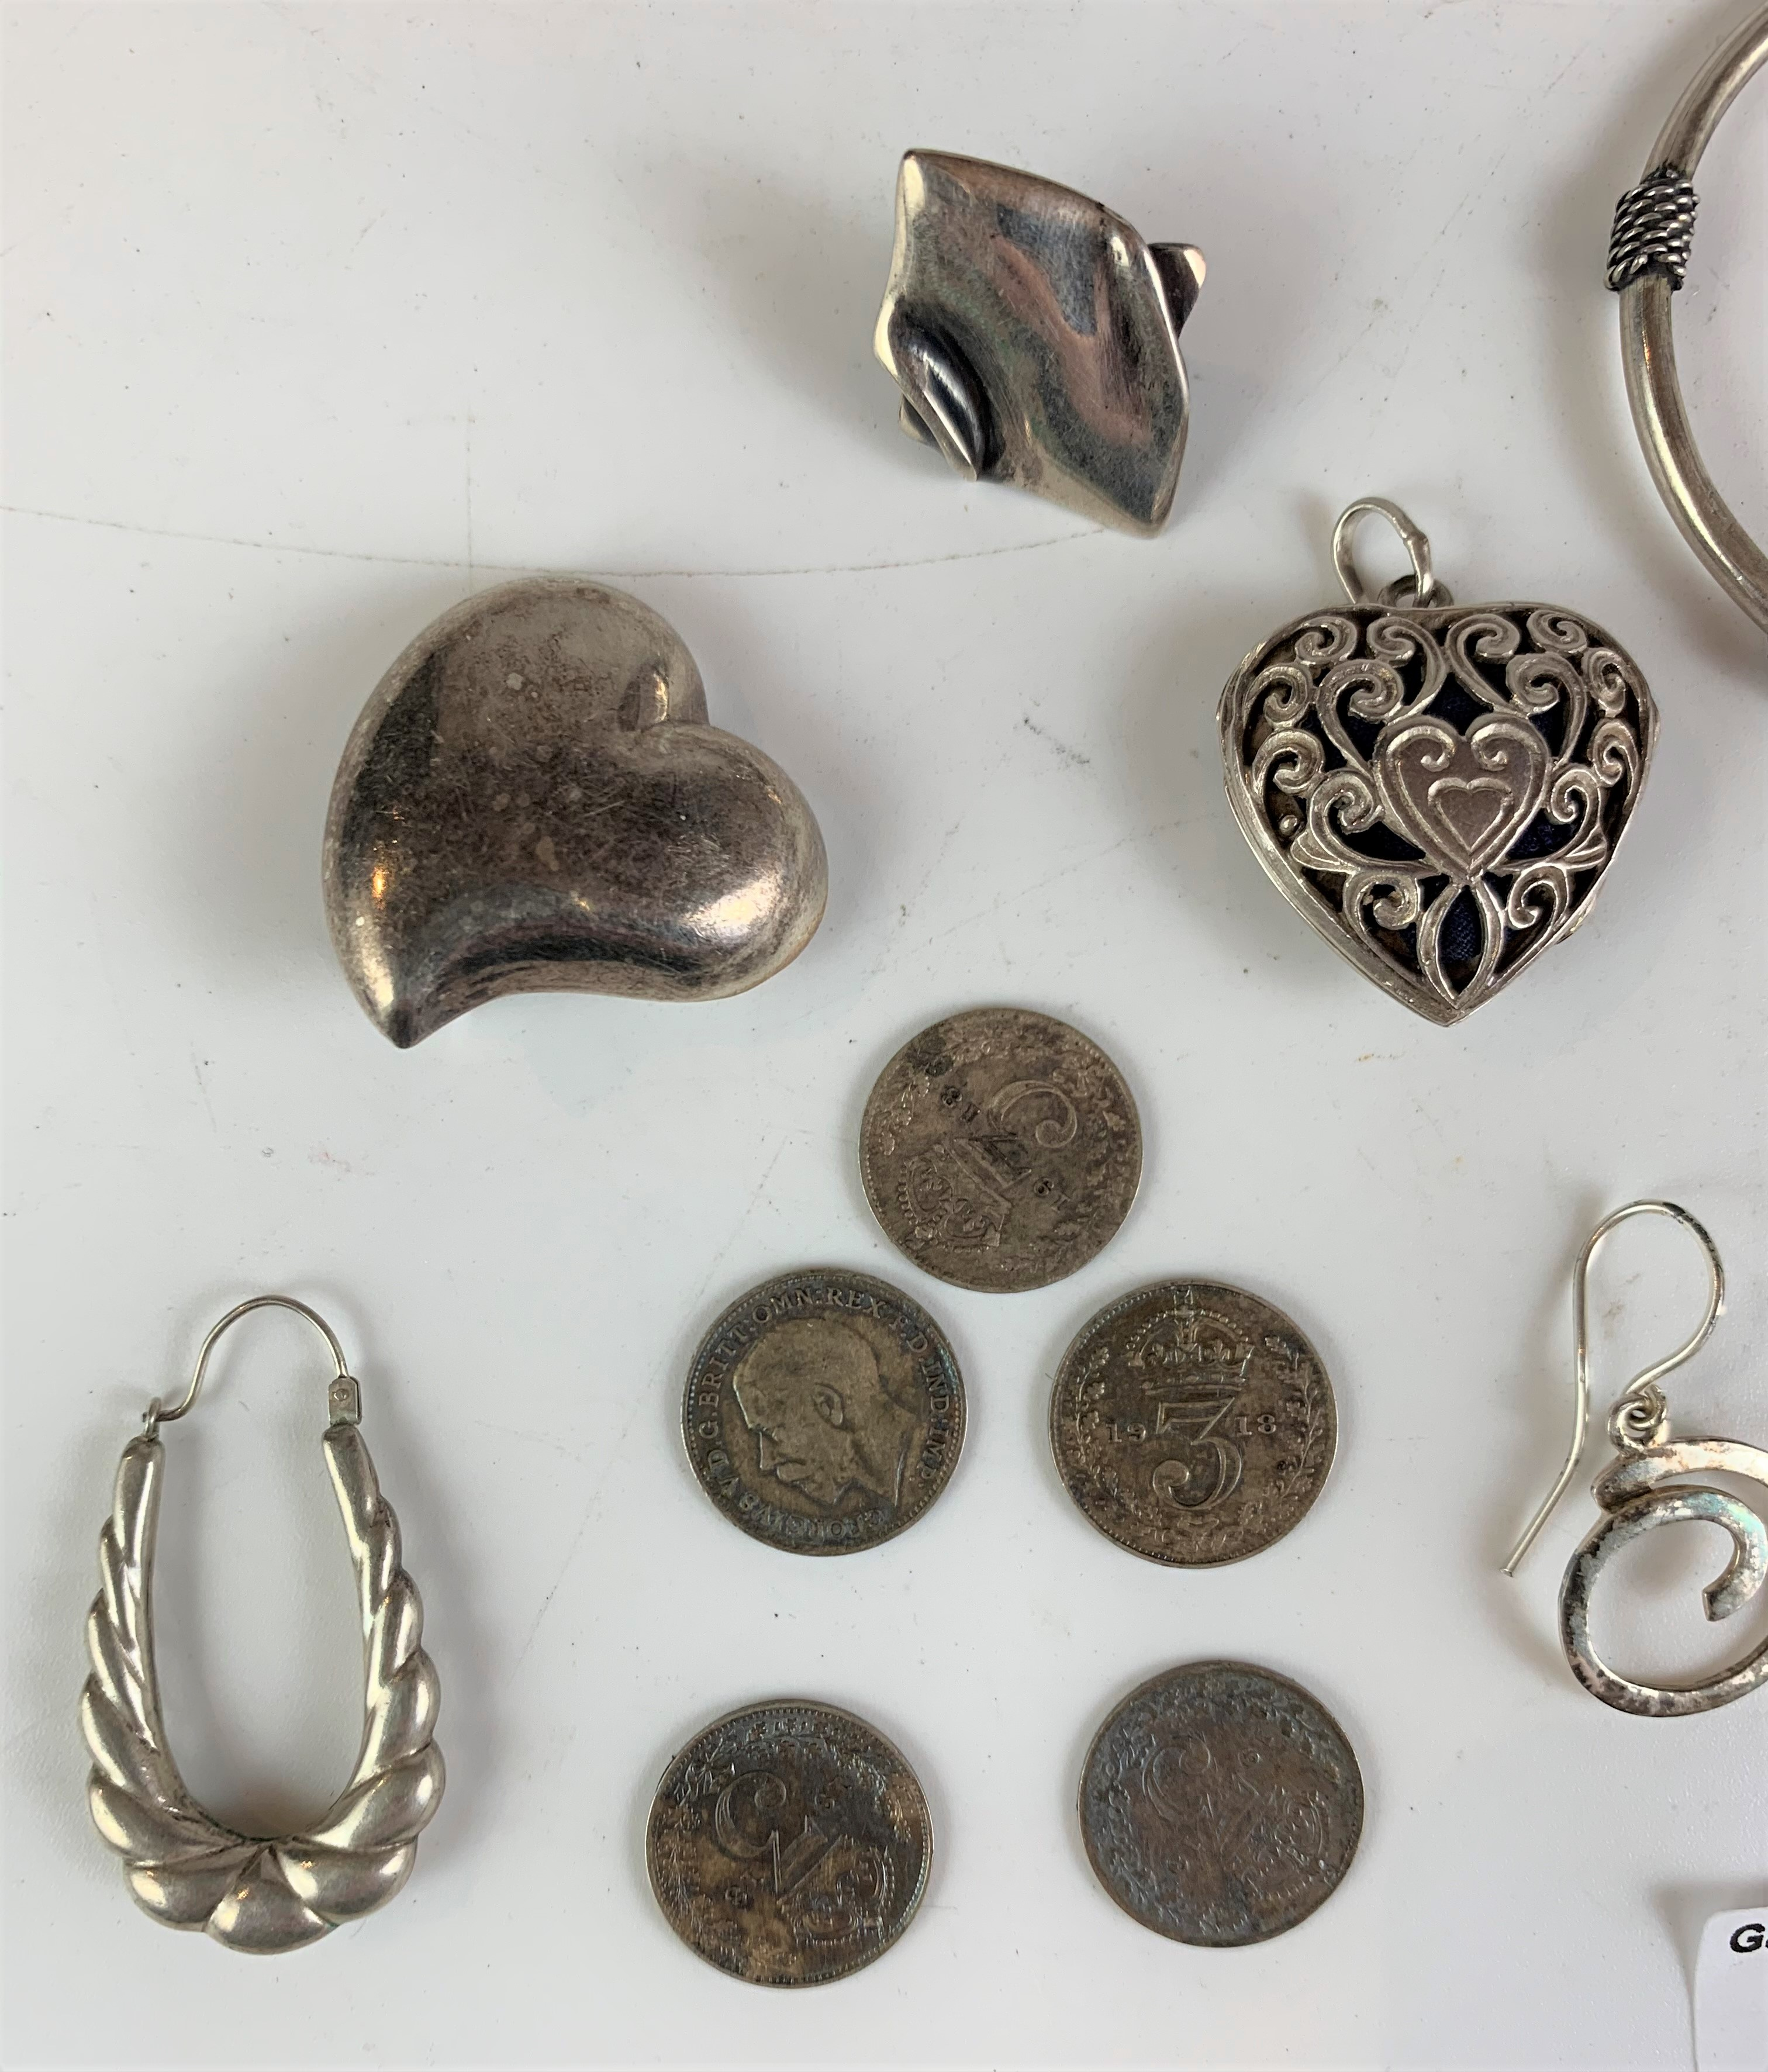 Assorted silver jewellery and coins, total w: 1.3 ozt - Image 3 of 5